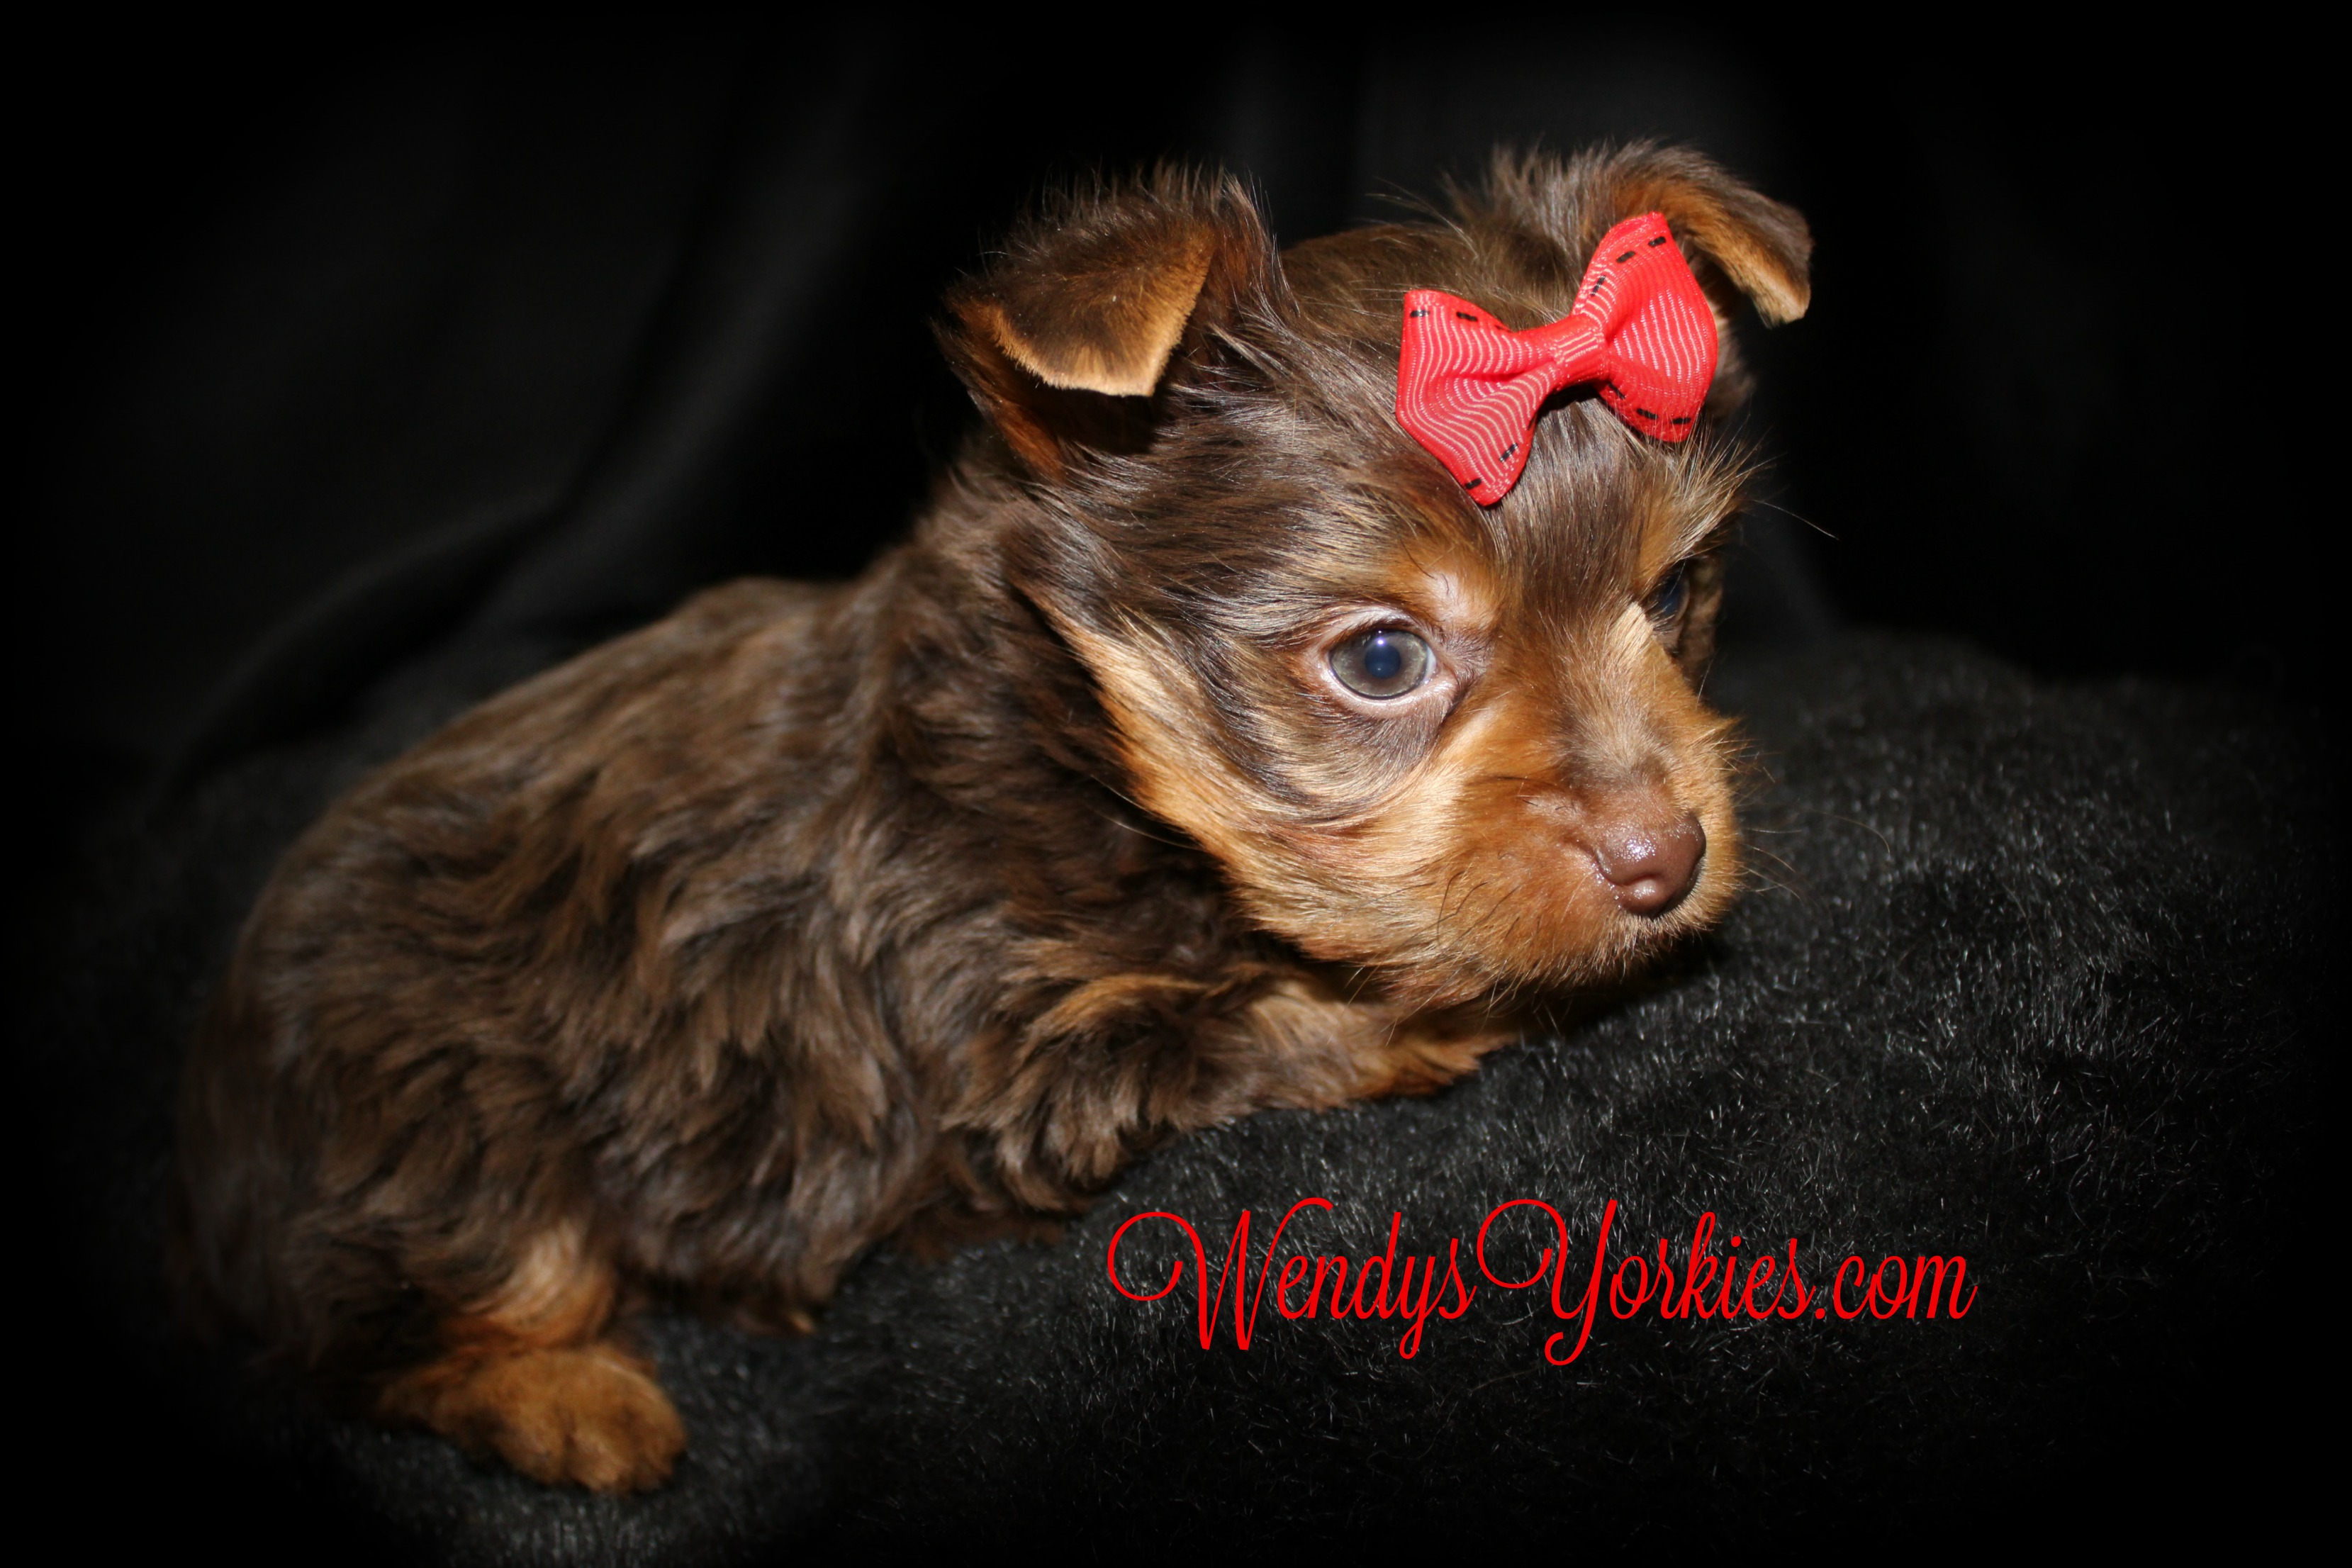 Chocolate Yorkie puppy for sale, WendysYorkies, Grace mc1